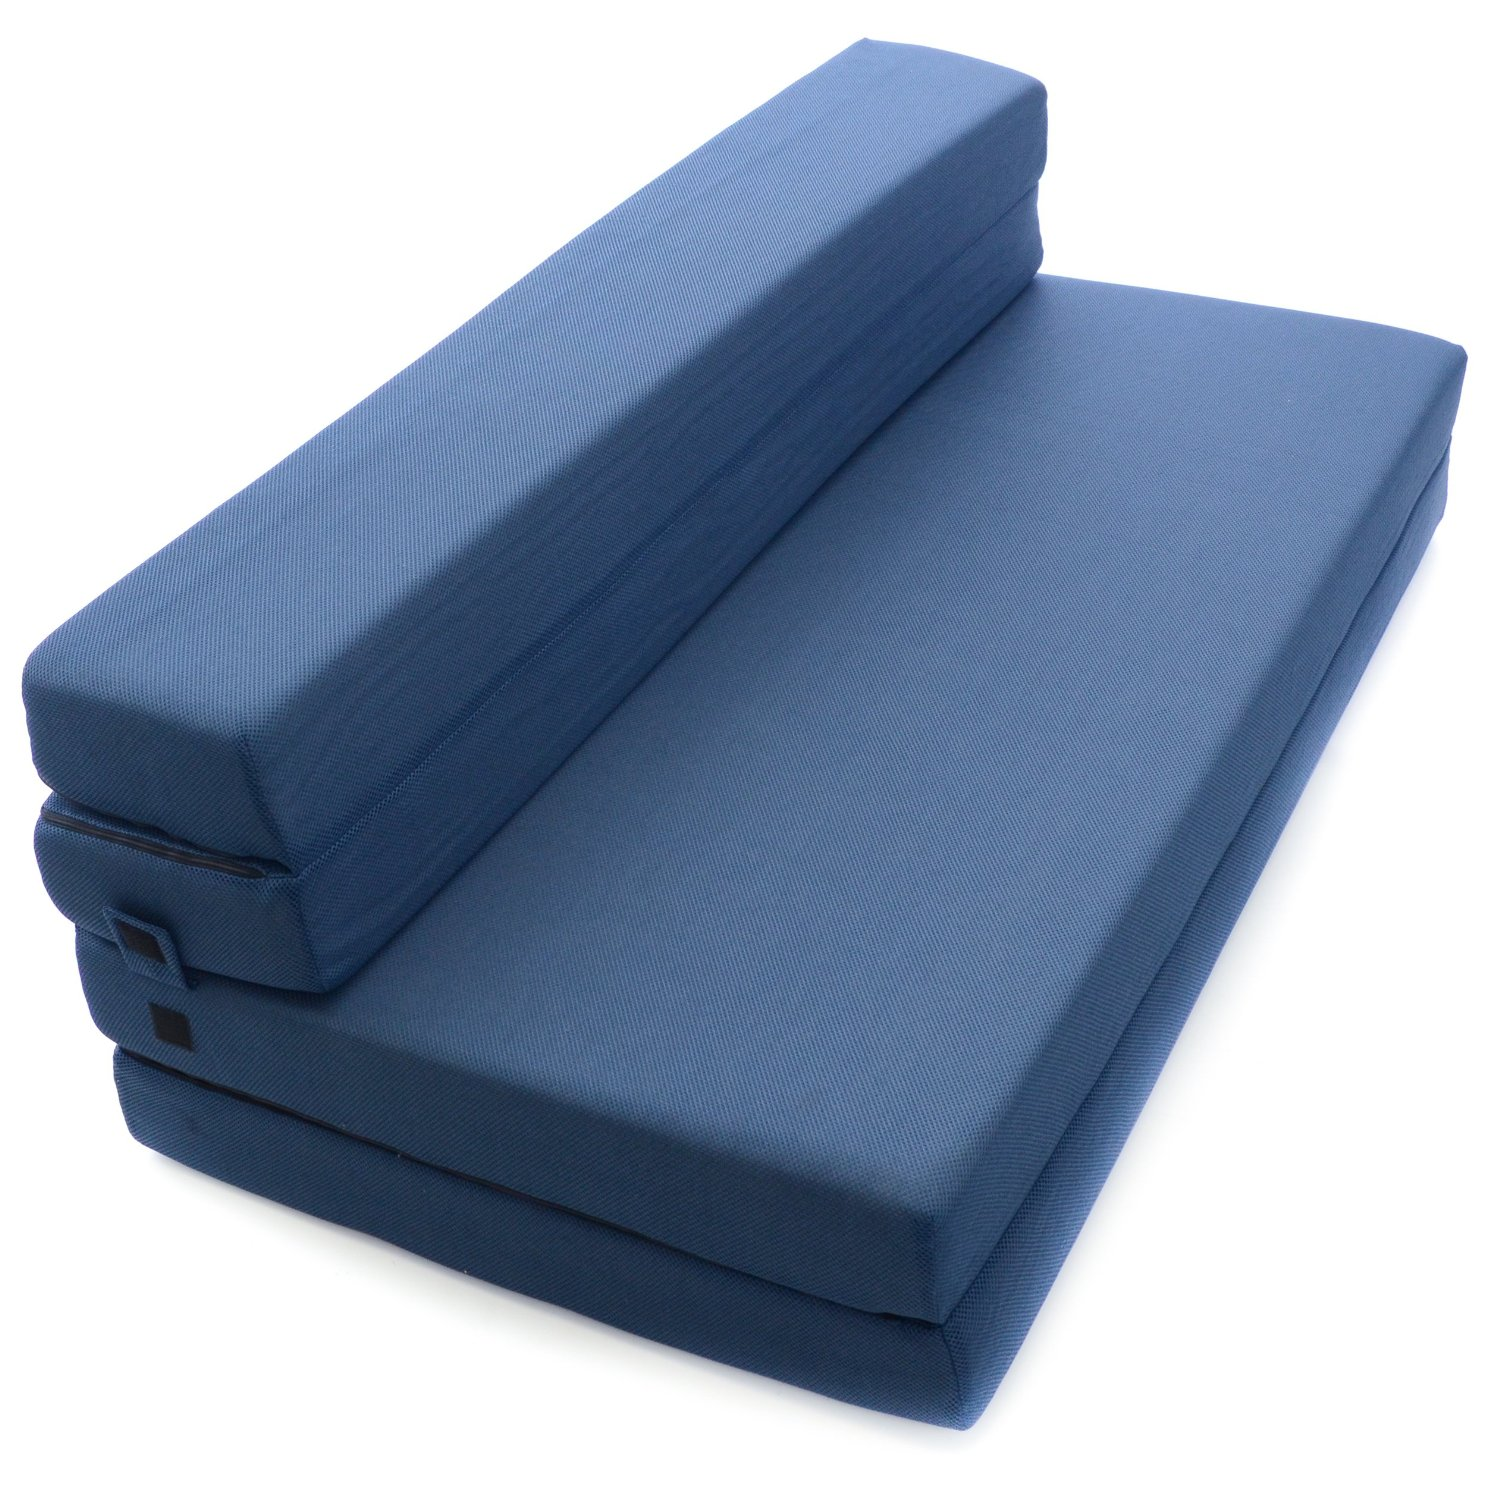 Tri Fold Foam Folding Mattress And Sofa Bed For Guests Queen 78x58x4 5 Inch Milliard Bedding The Ultimate Sleep Experience